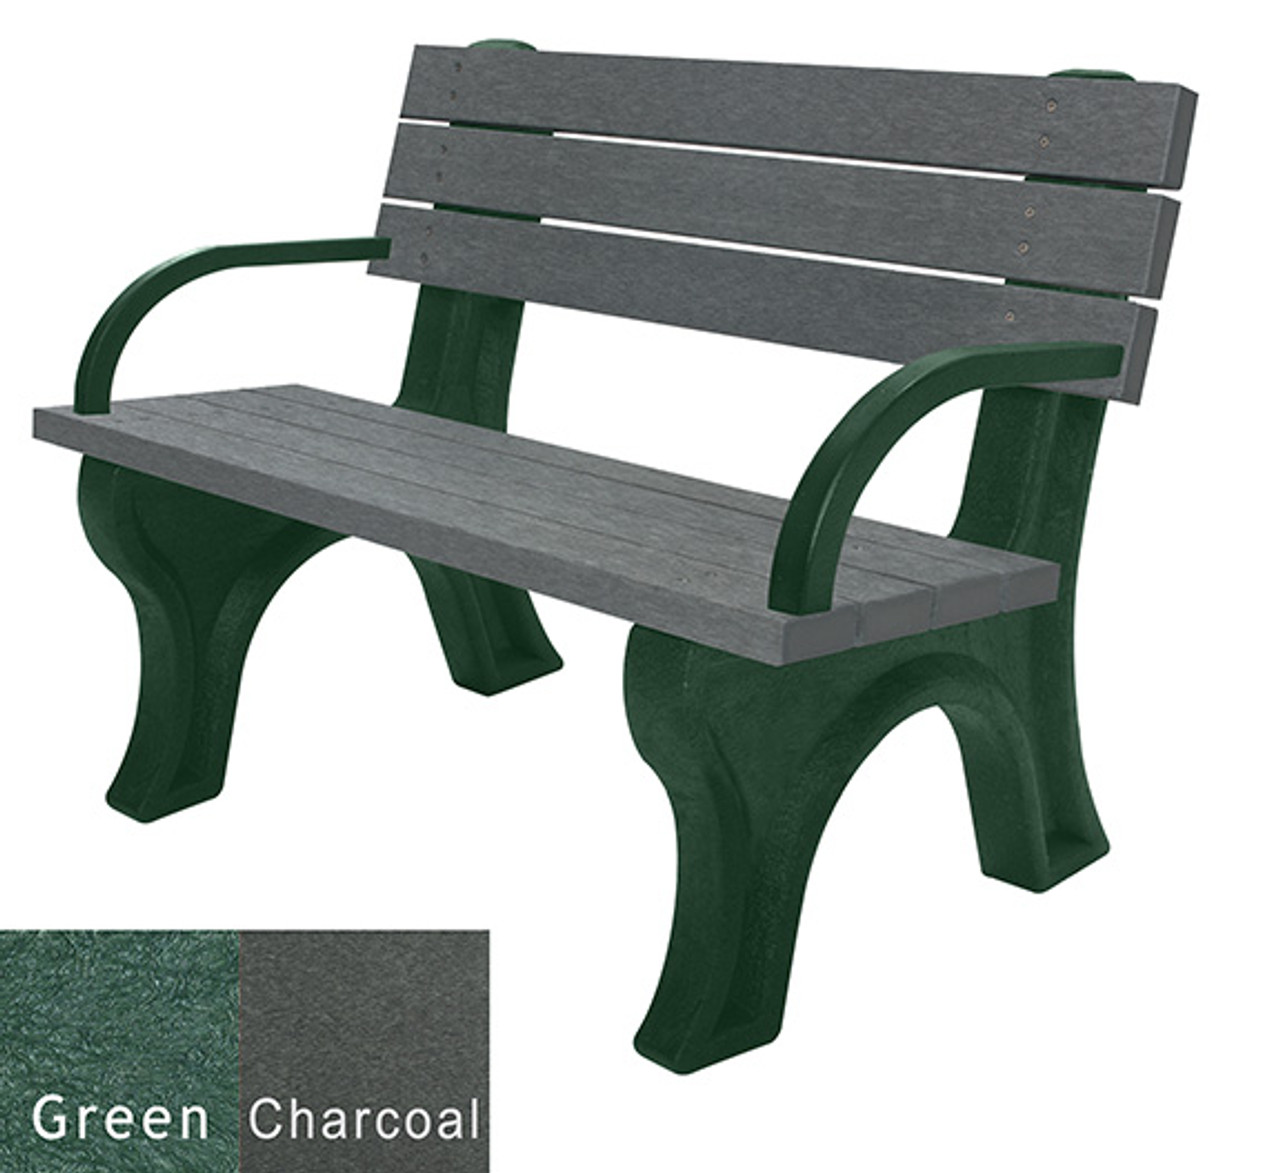 Green and Charcoal